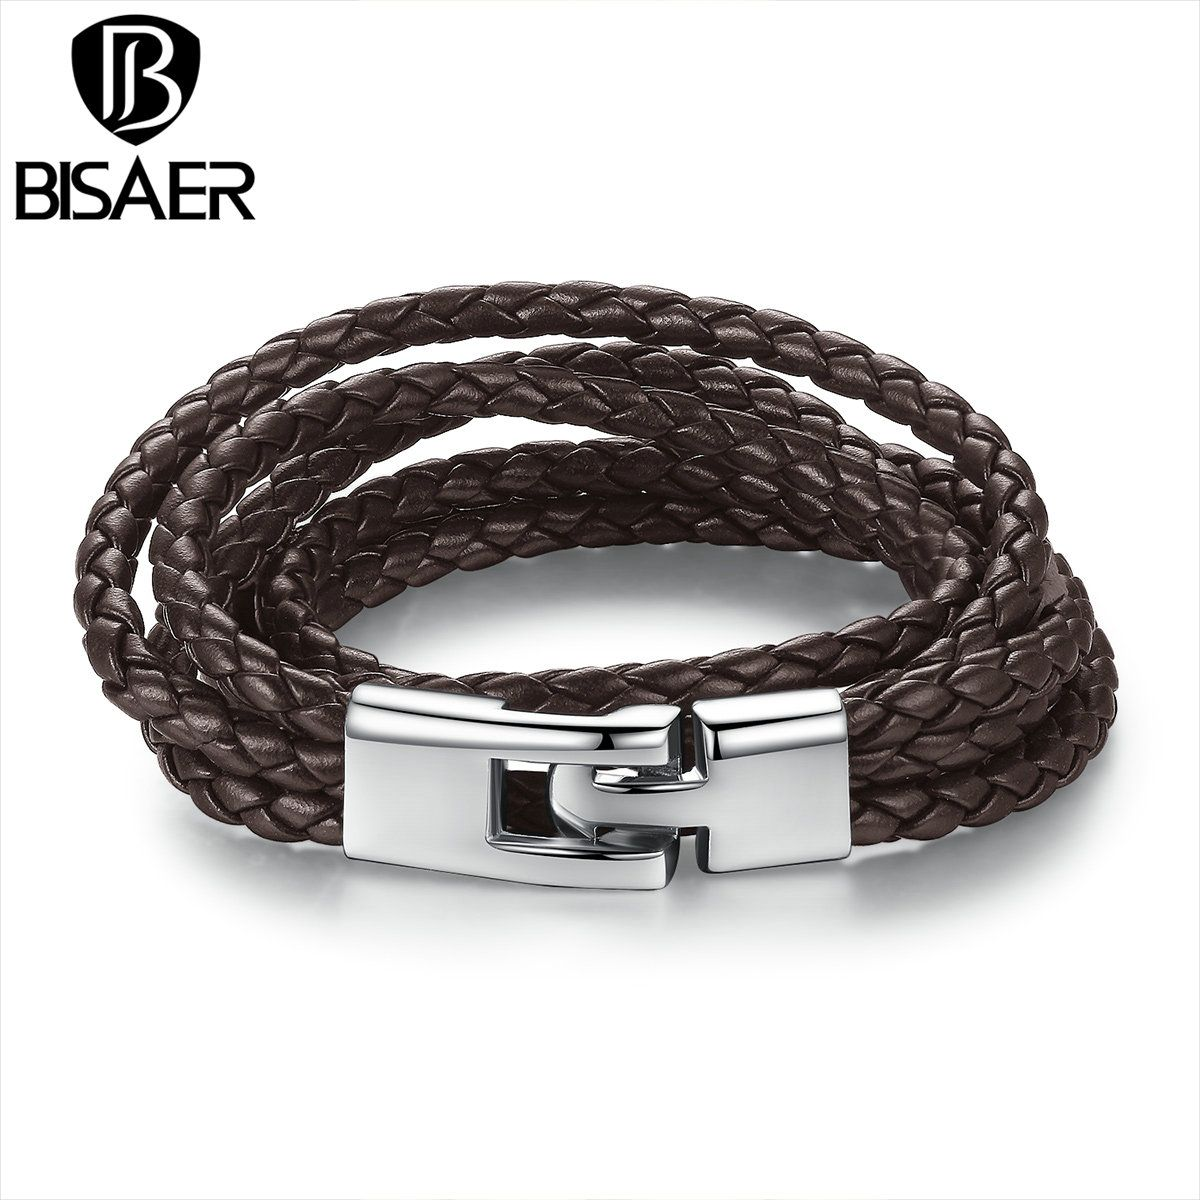 Bisaer new trendy leather bracelet braided rope chain with magnetic